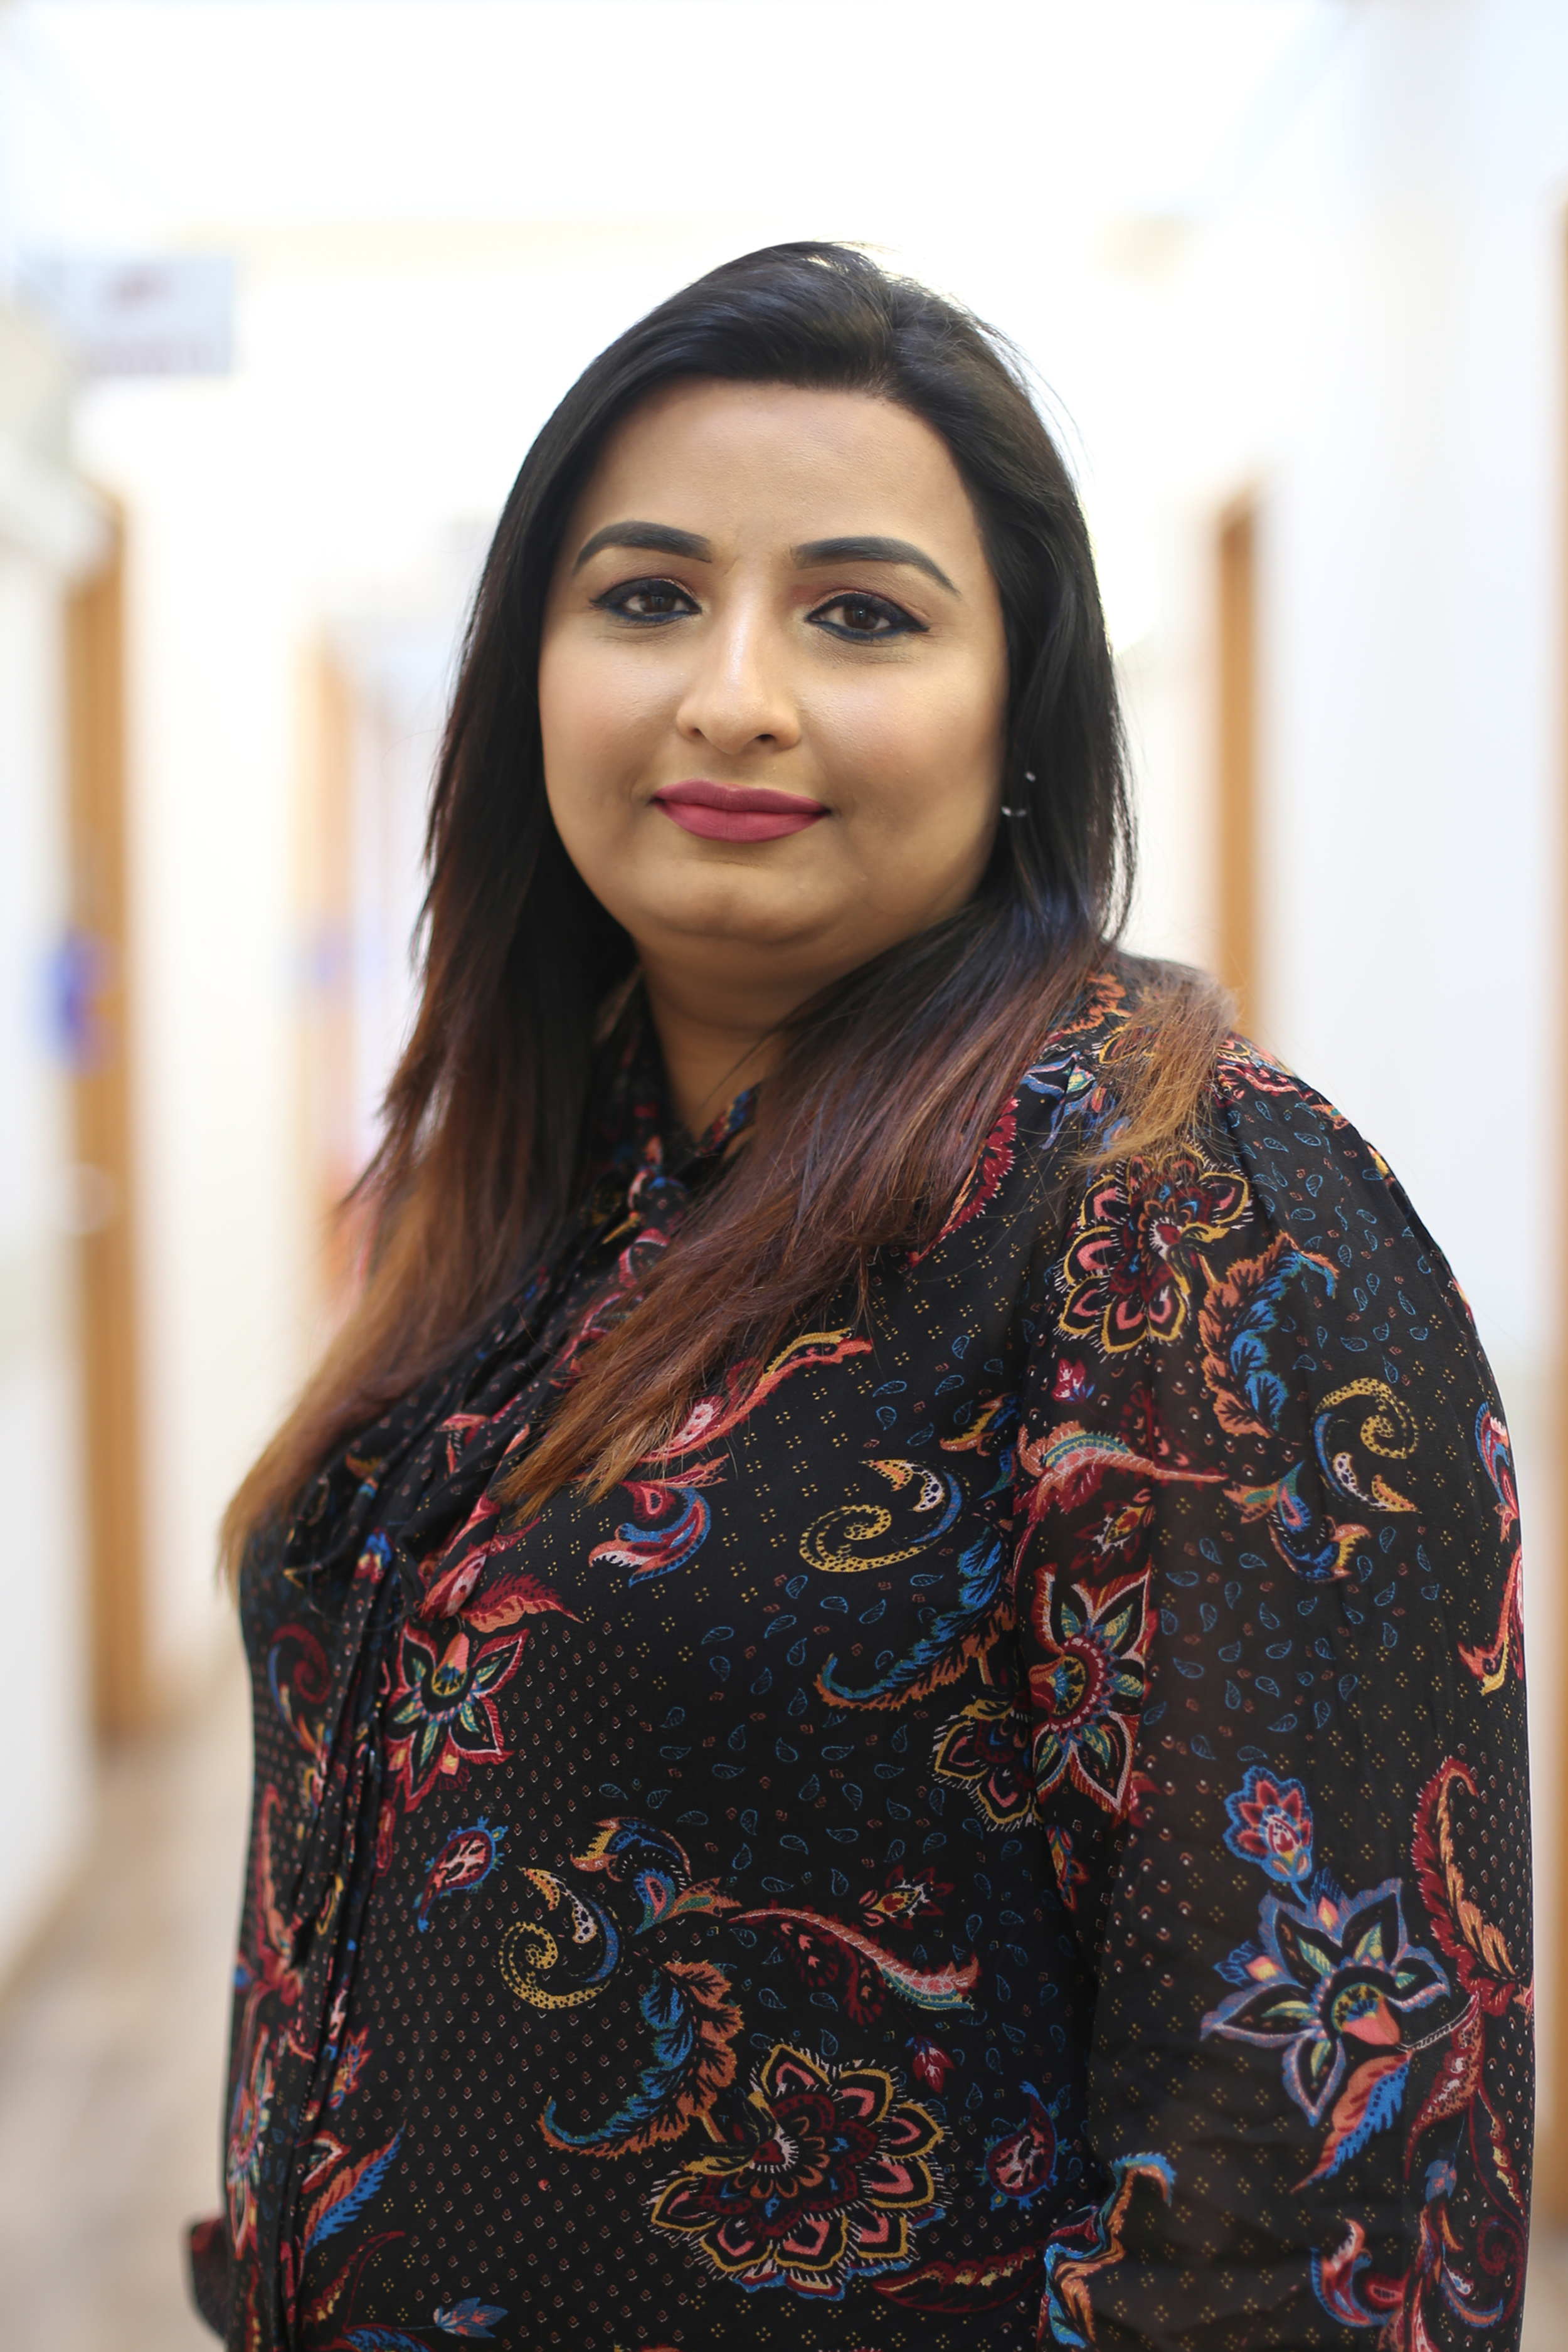 Mrs Seema Ussene - Practice Administrator | Referrals LeadSeema is a full time working mother of 2 children and is a dedicated individual who has strong family values. She is also the Child Safeguarding administrator for the practice.Experience: 5 years in primary CareLanguages: English | Hindi | Gujarati | UrduAchievements:• Medical Terminology Foundation Training• Diploma in Children & Young People's Workforce